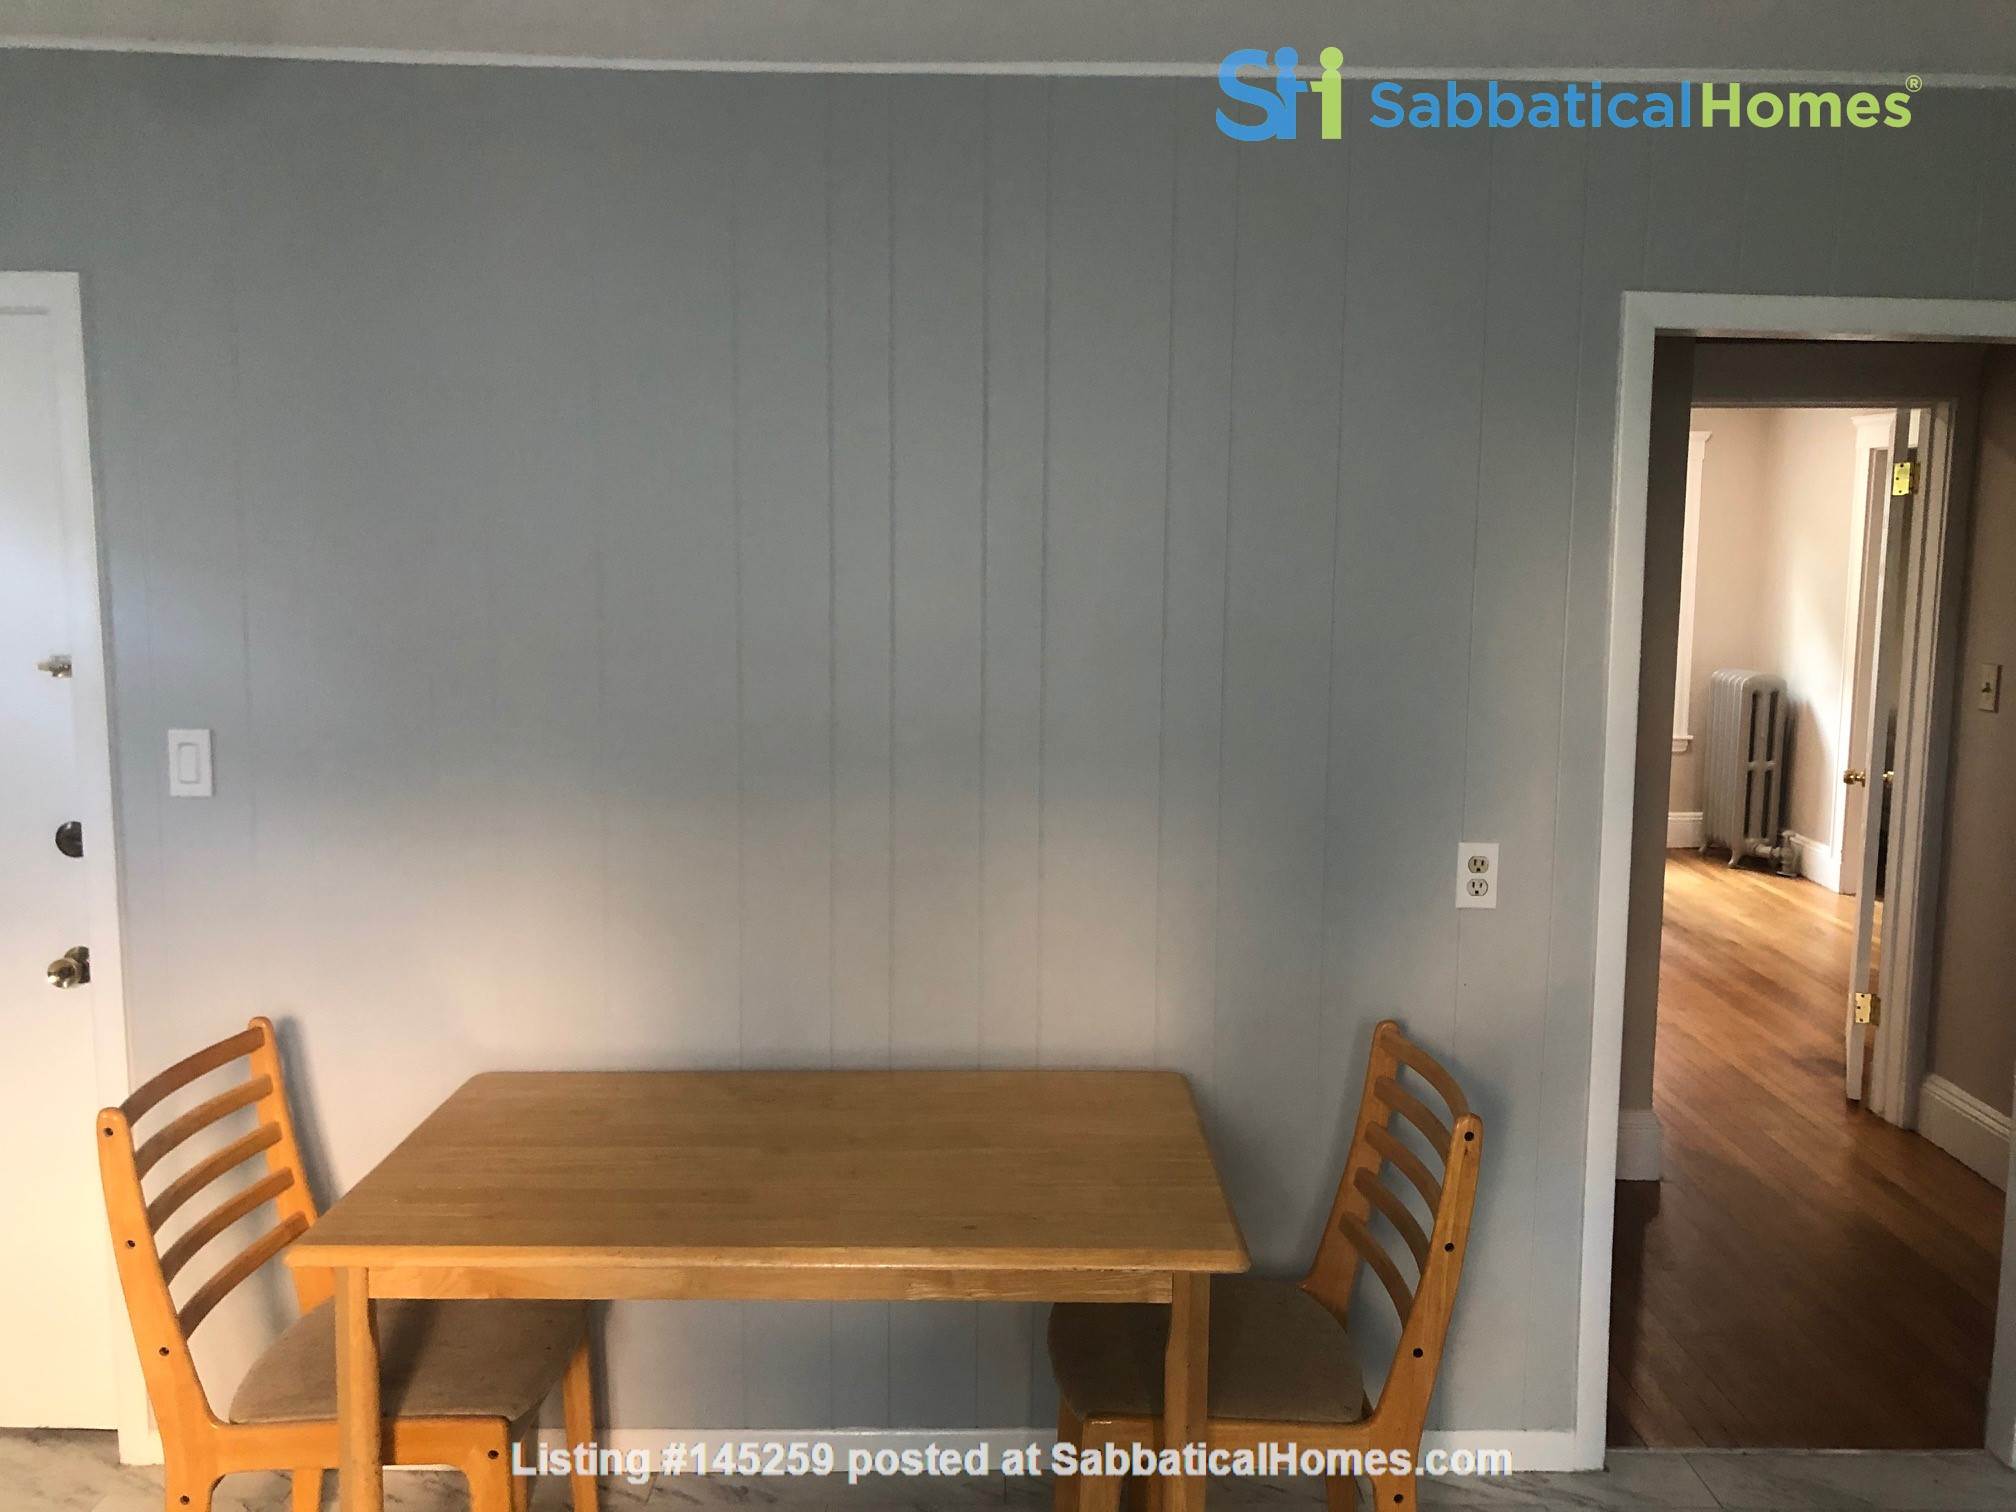 SOMERVILLE NEWLY RENOVATED APARTMENT WALKING DISTANCE FROM HARVARD Home Rental in Somerville, Massachusetts, United States 0